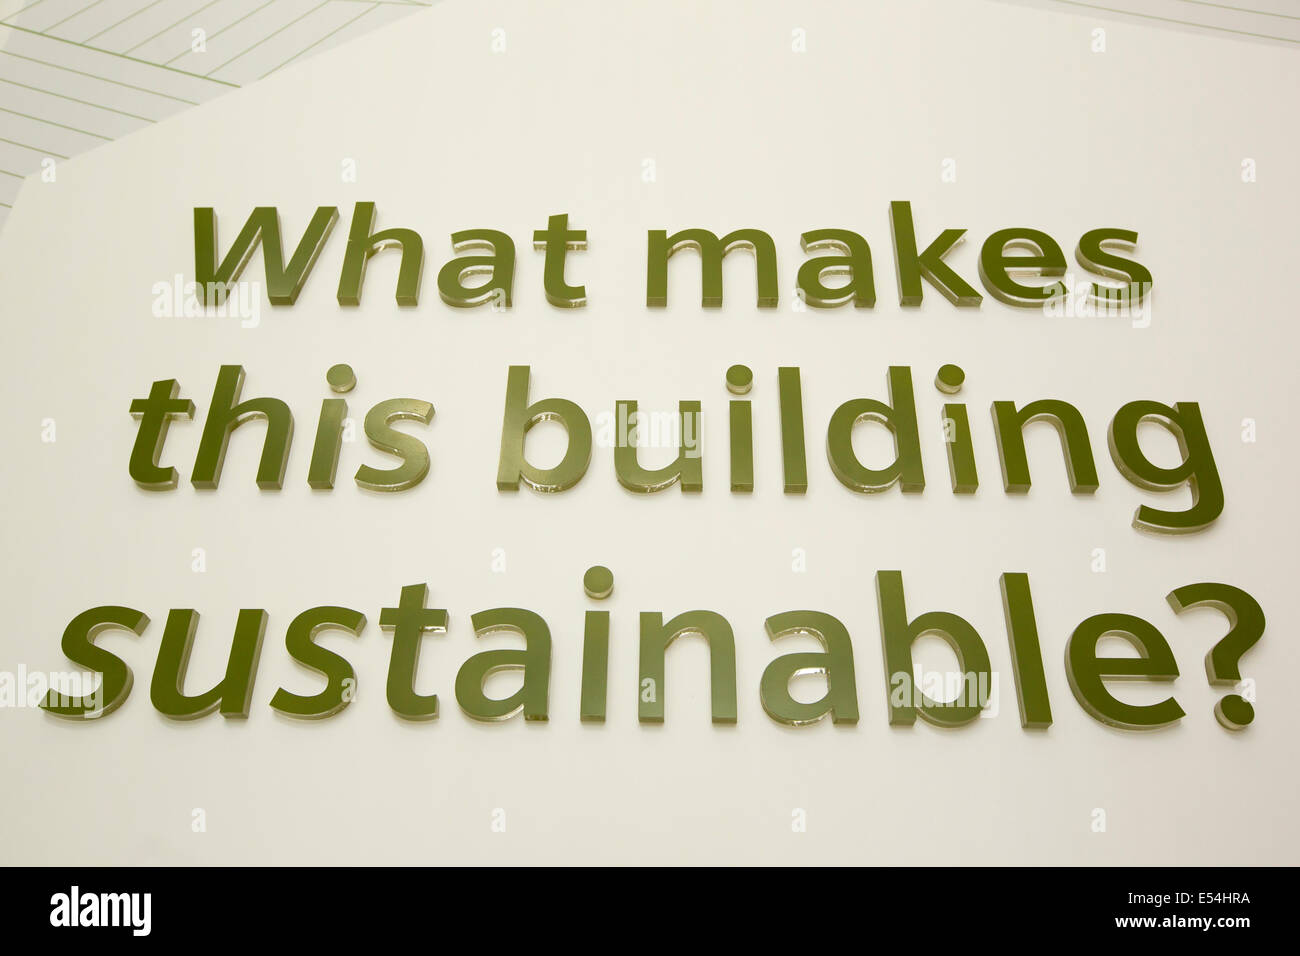 A sustainability exhibition at the Crystal building which is the first building in the world to be awarded an outstanding - Stock Image